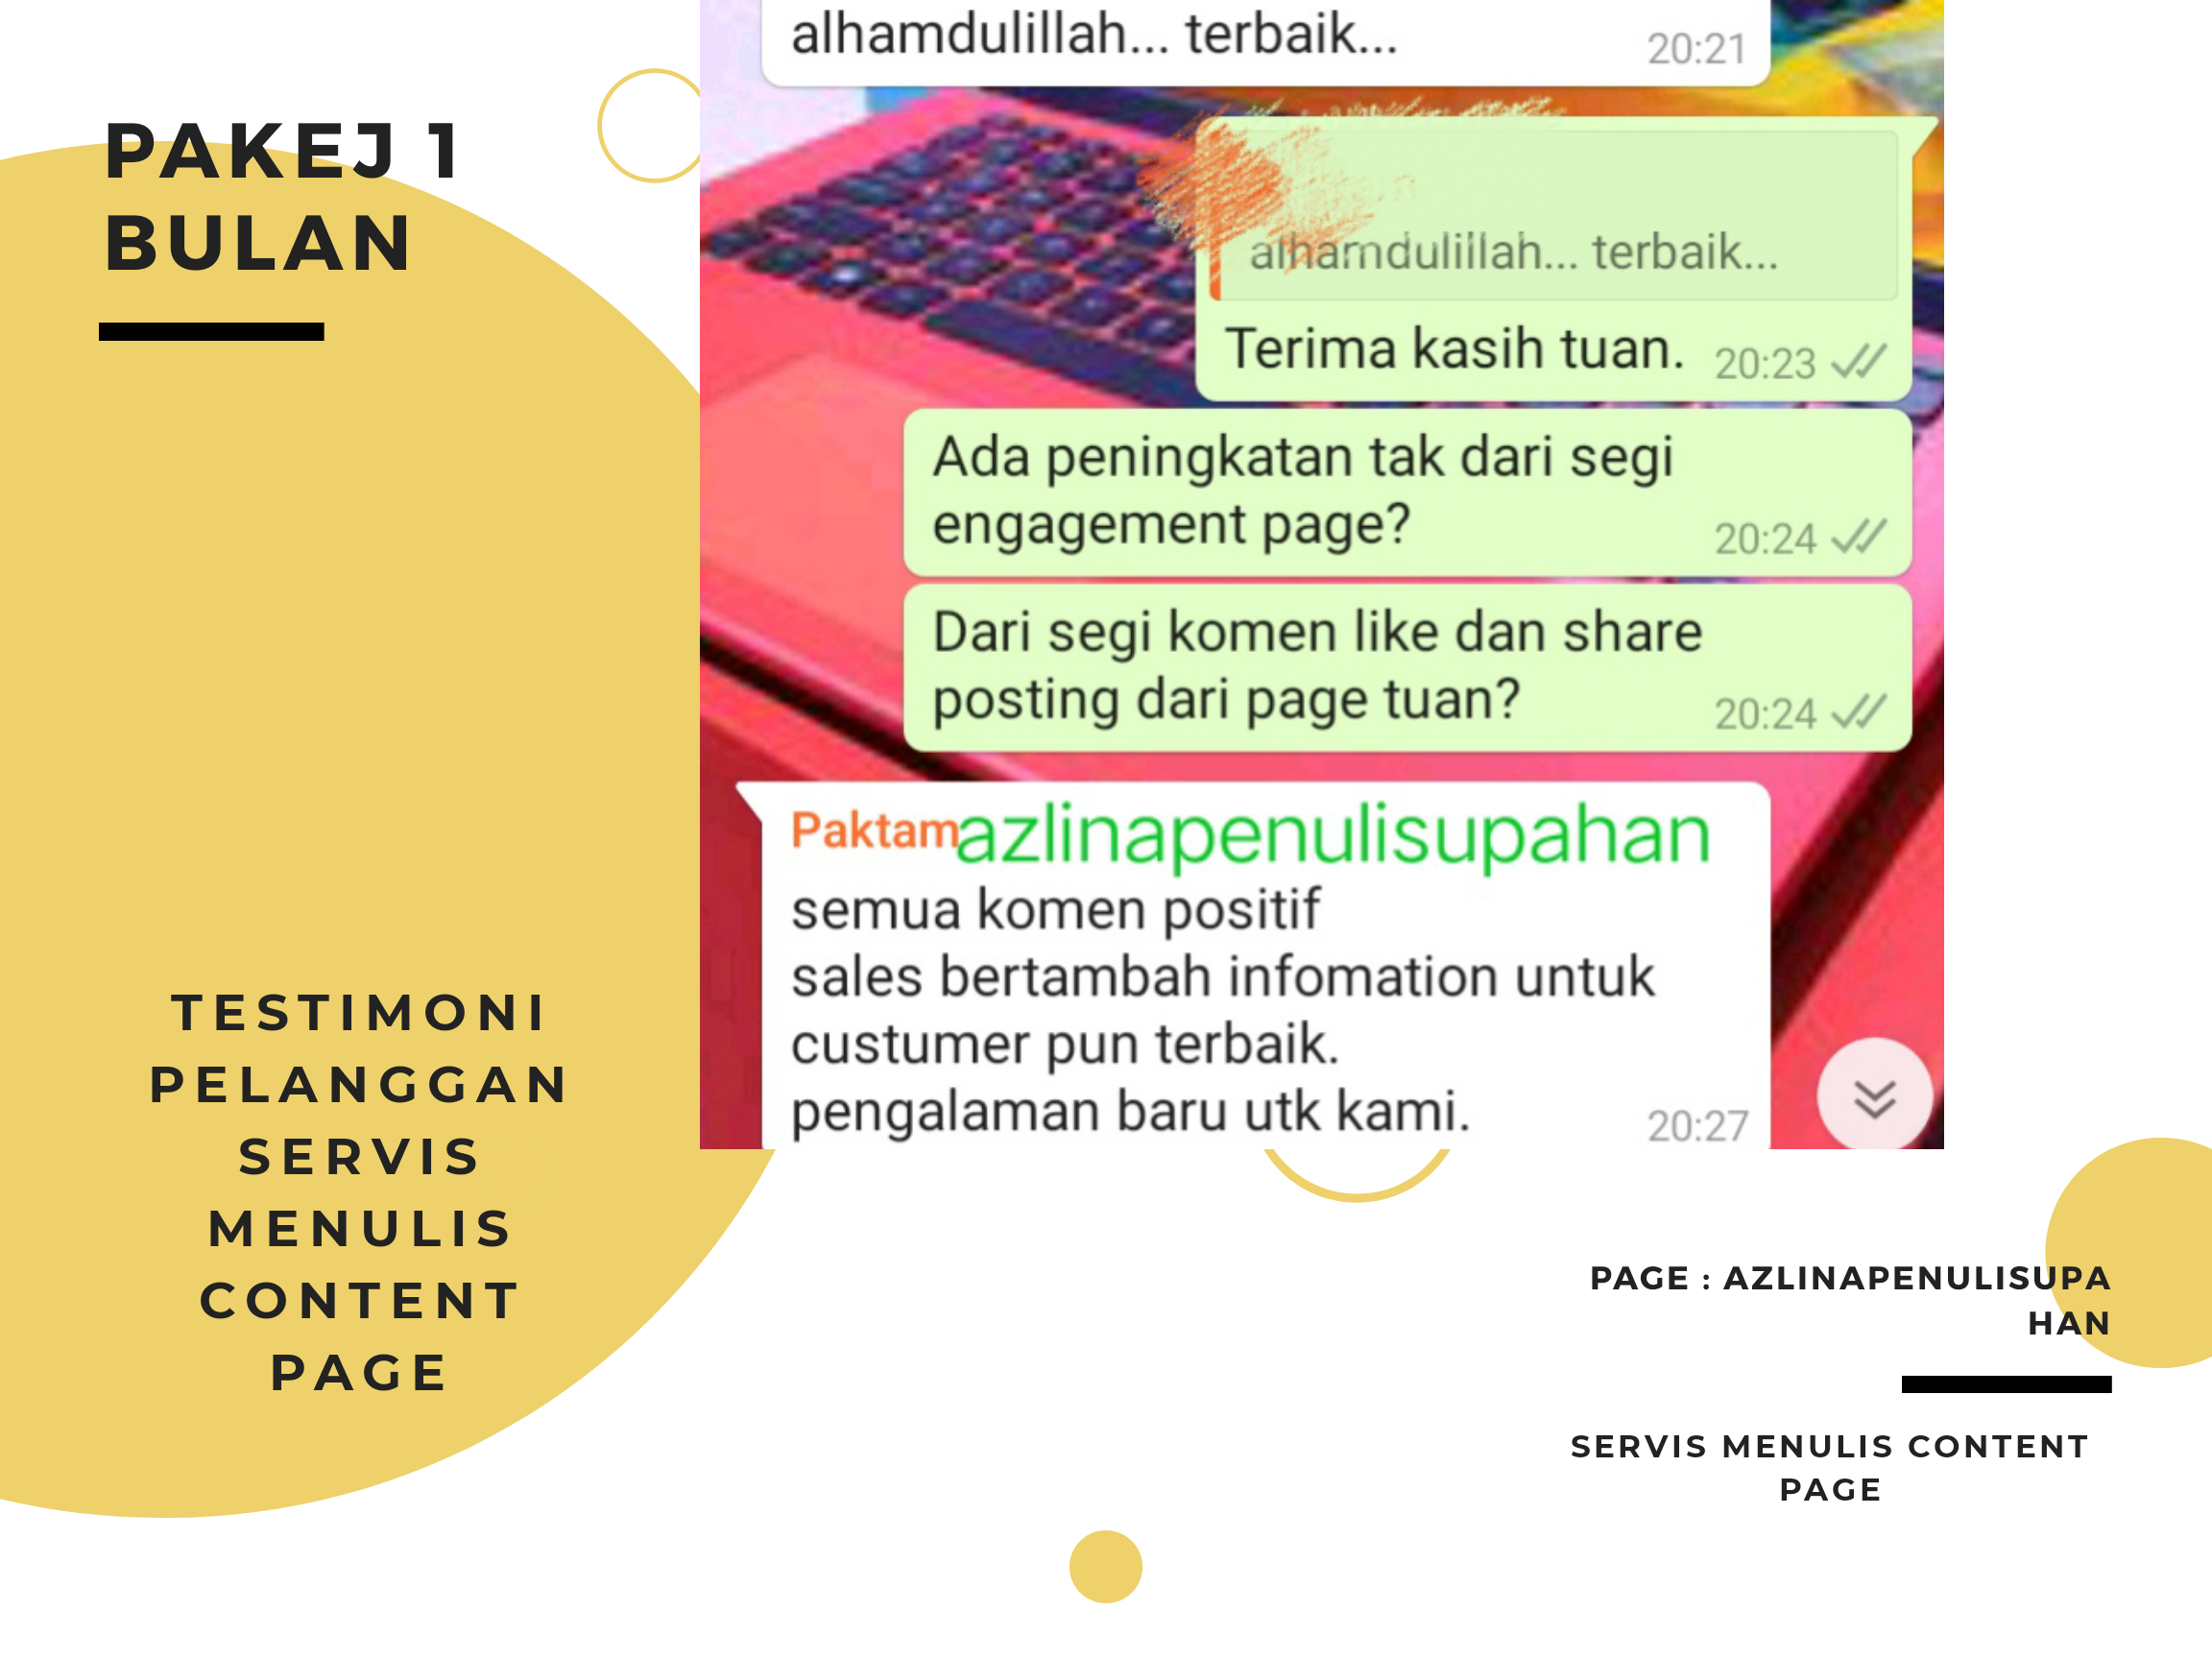 Content page, upah menulis content page Facebook